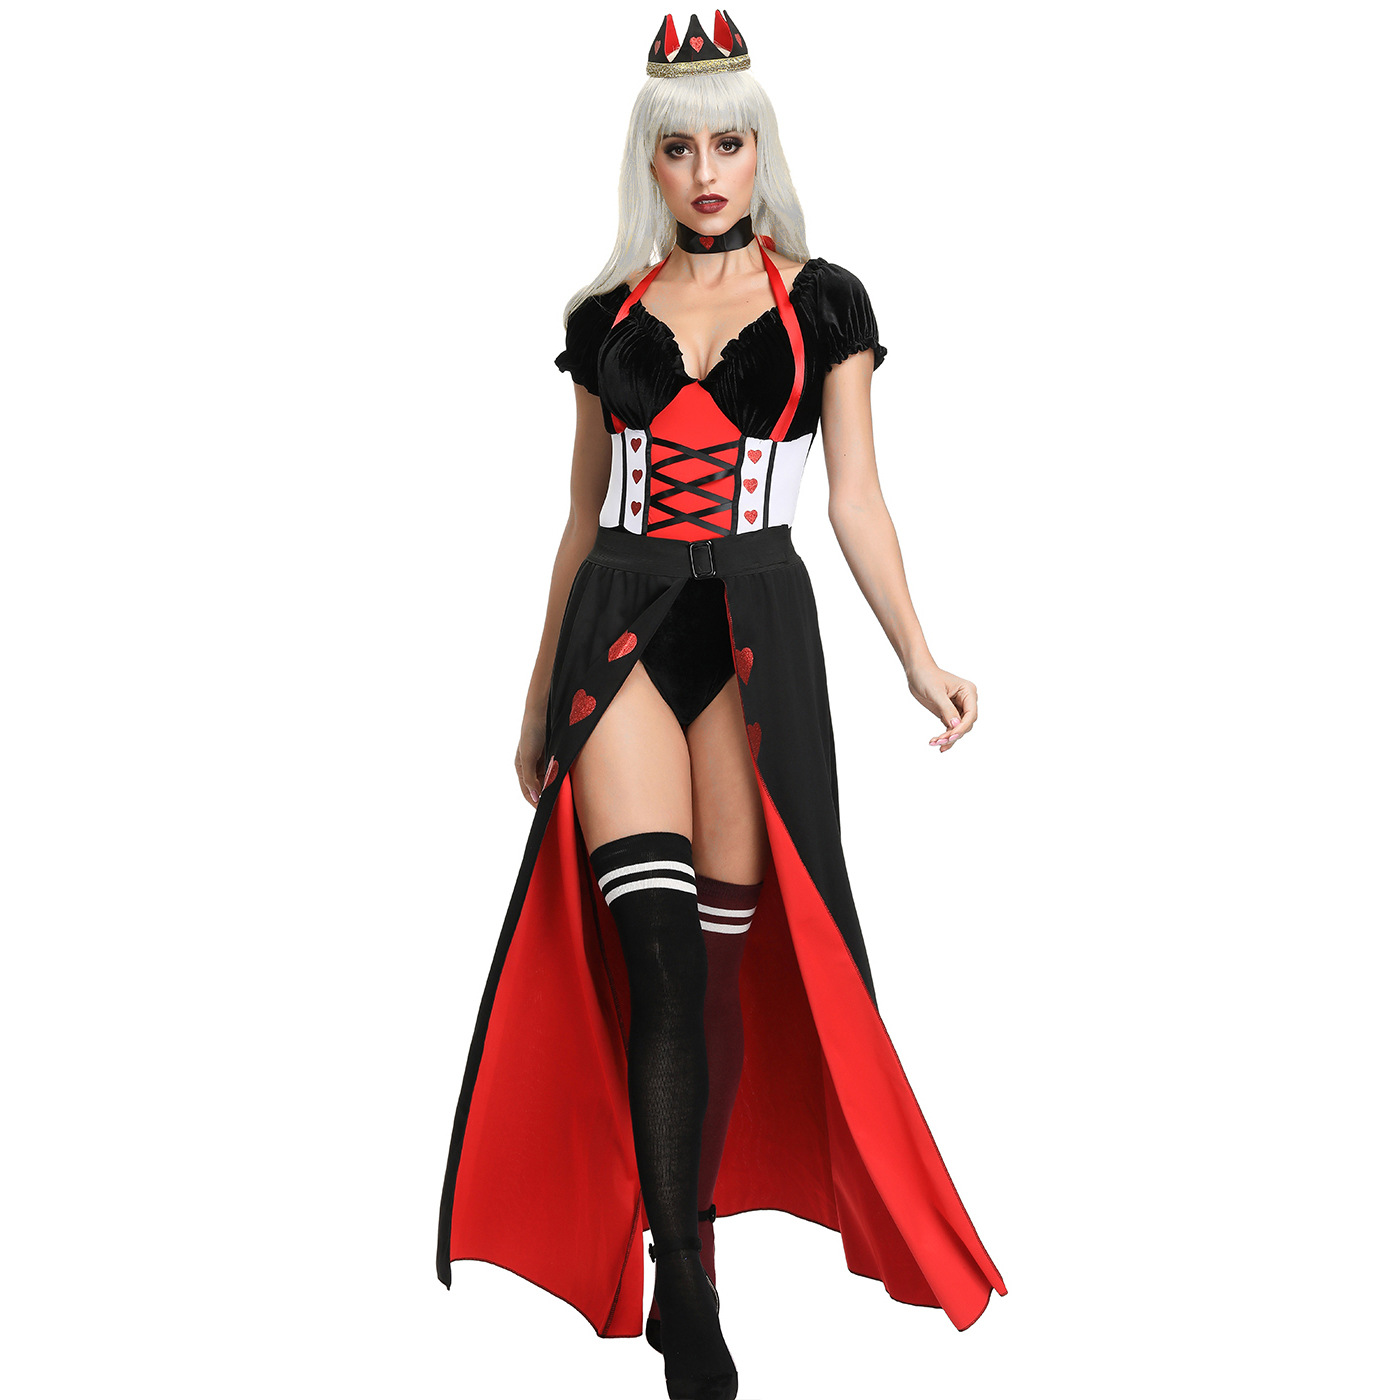 peach heart queen court dress cosplay costume nihaostyles wholesale halloween costumes NSMRP79033